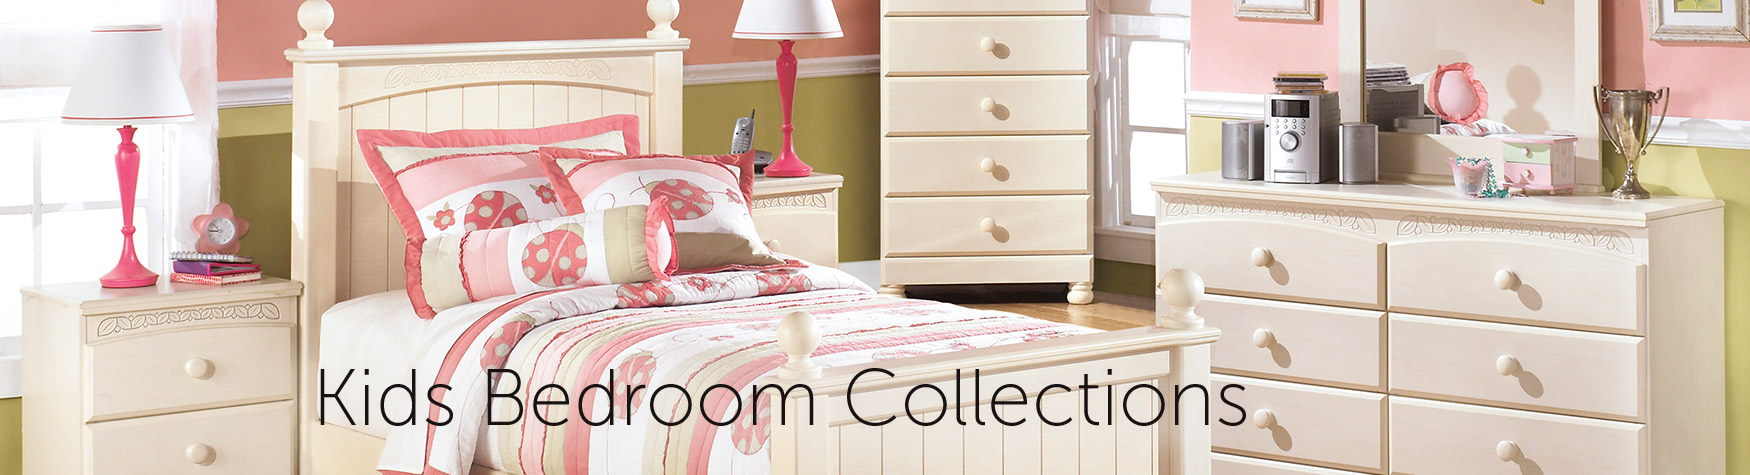 kids-bedroom-collection-banner.jpg